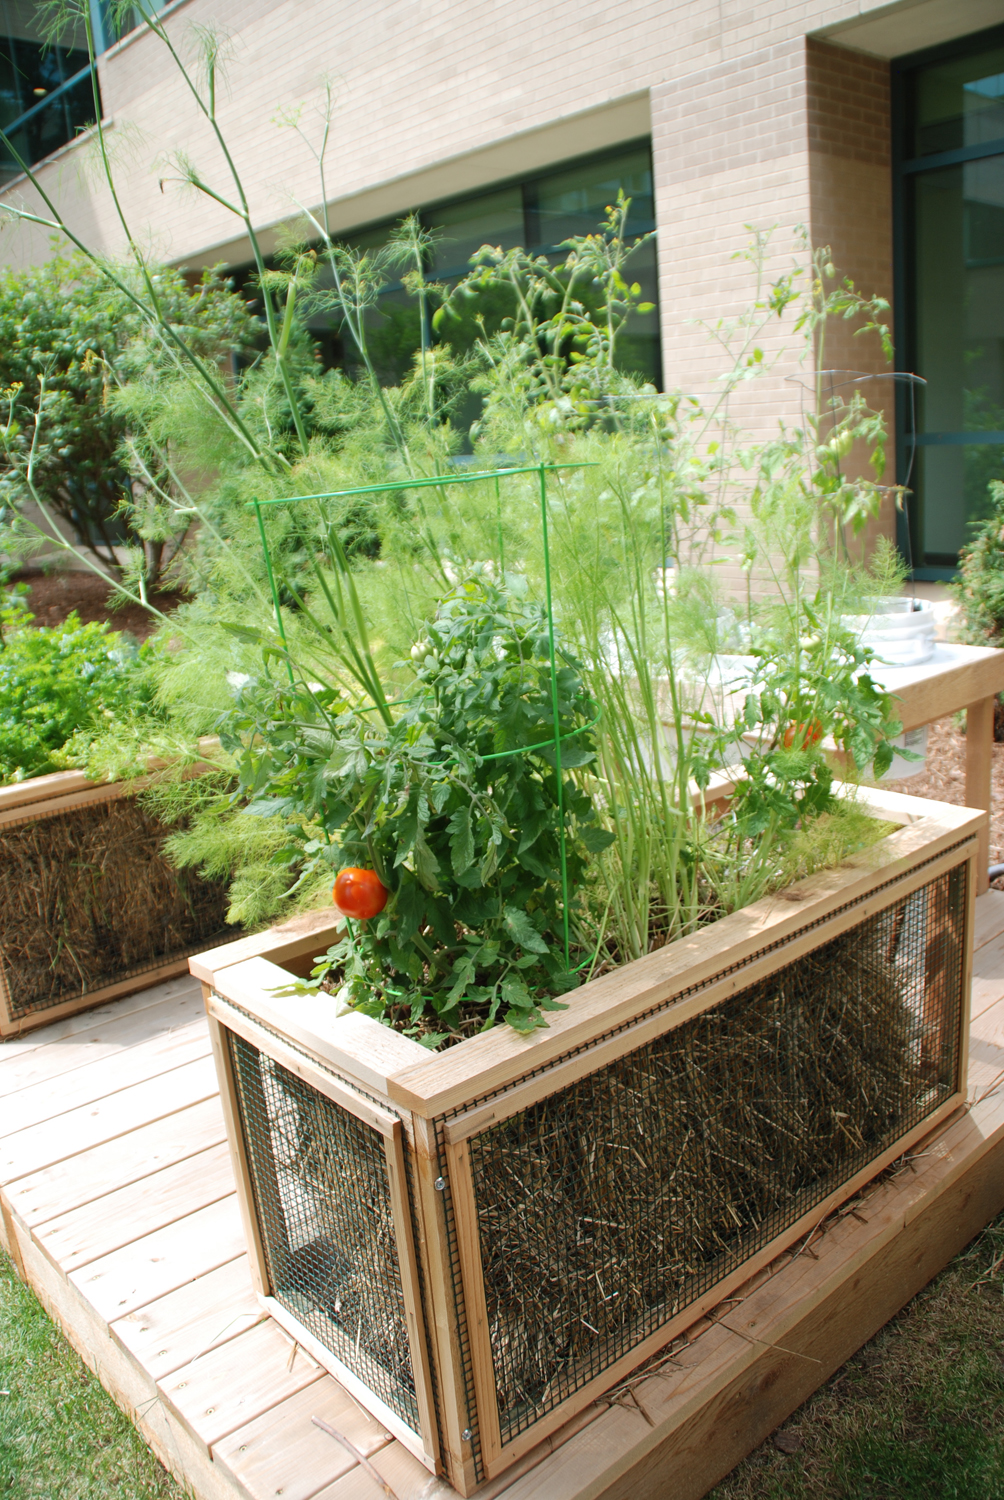 create a planting bed for seeds by covering the straw bale with a one to two inch layer of planting mix - Straw Bale Garden